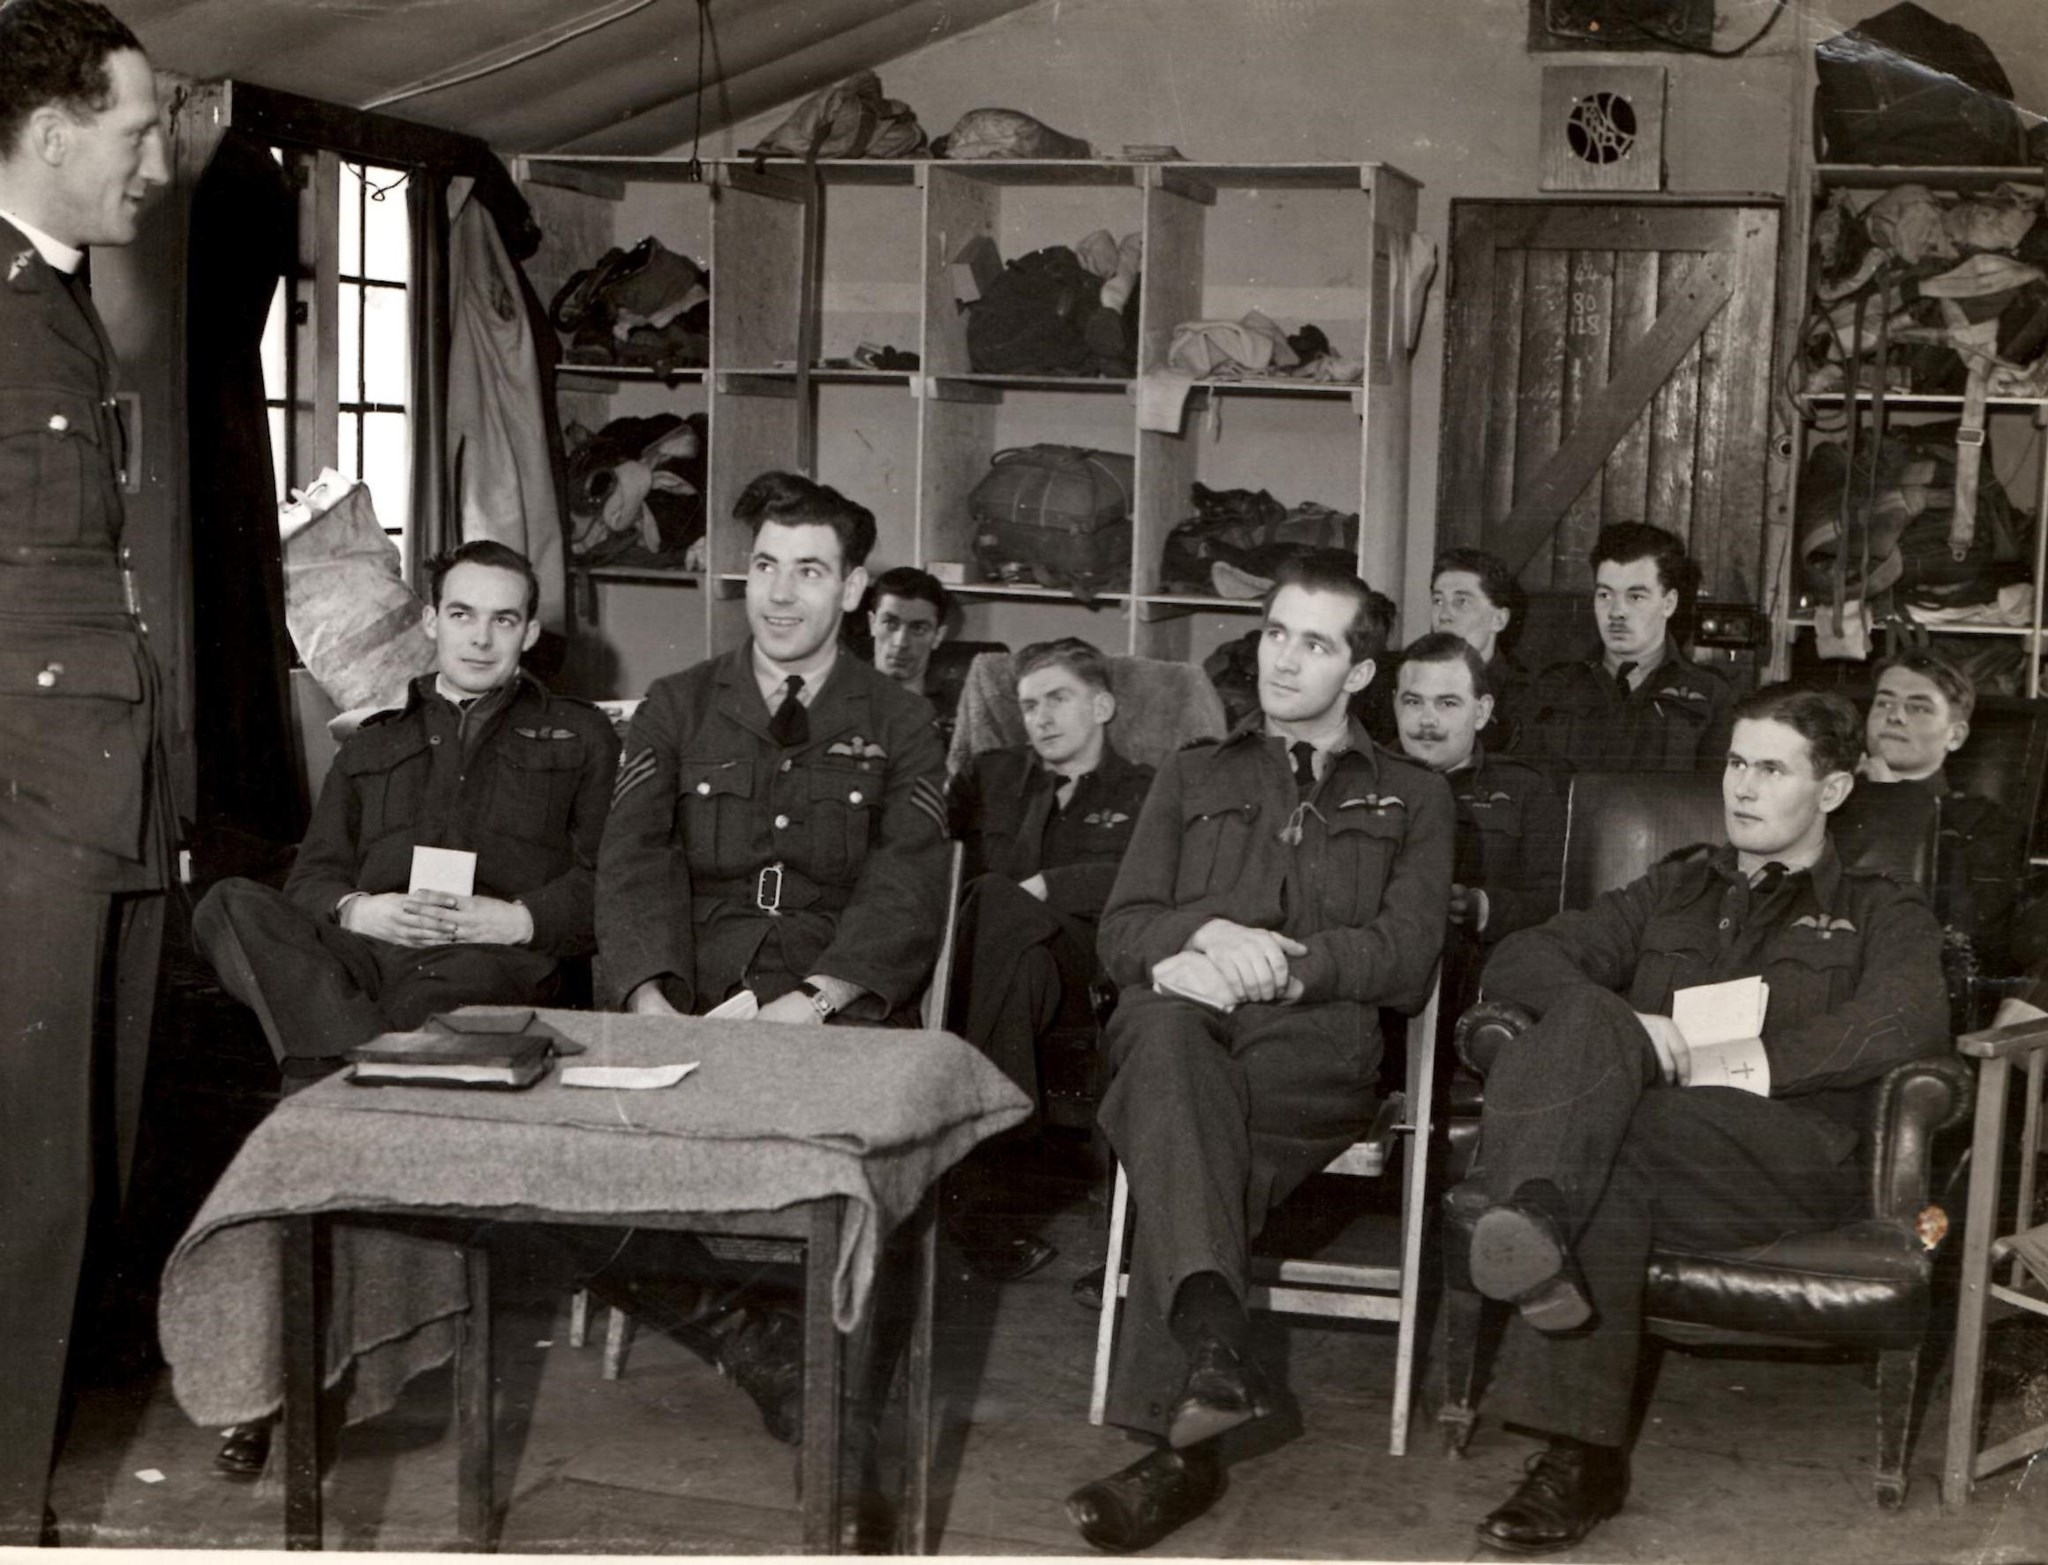 Chaplain's Briefing No Other Detail